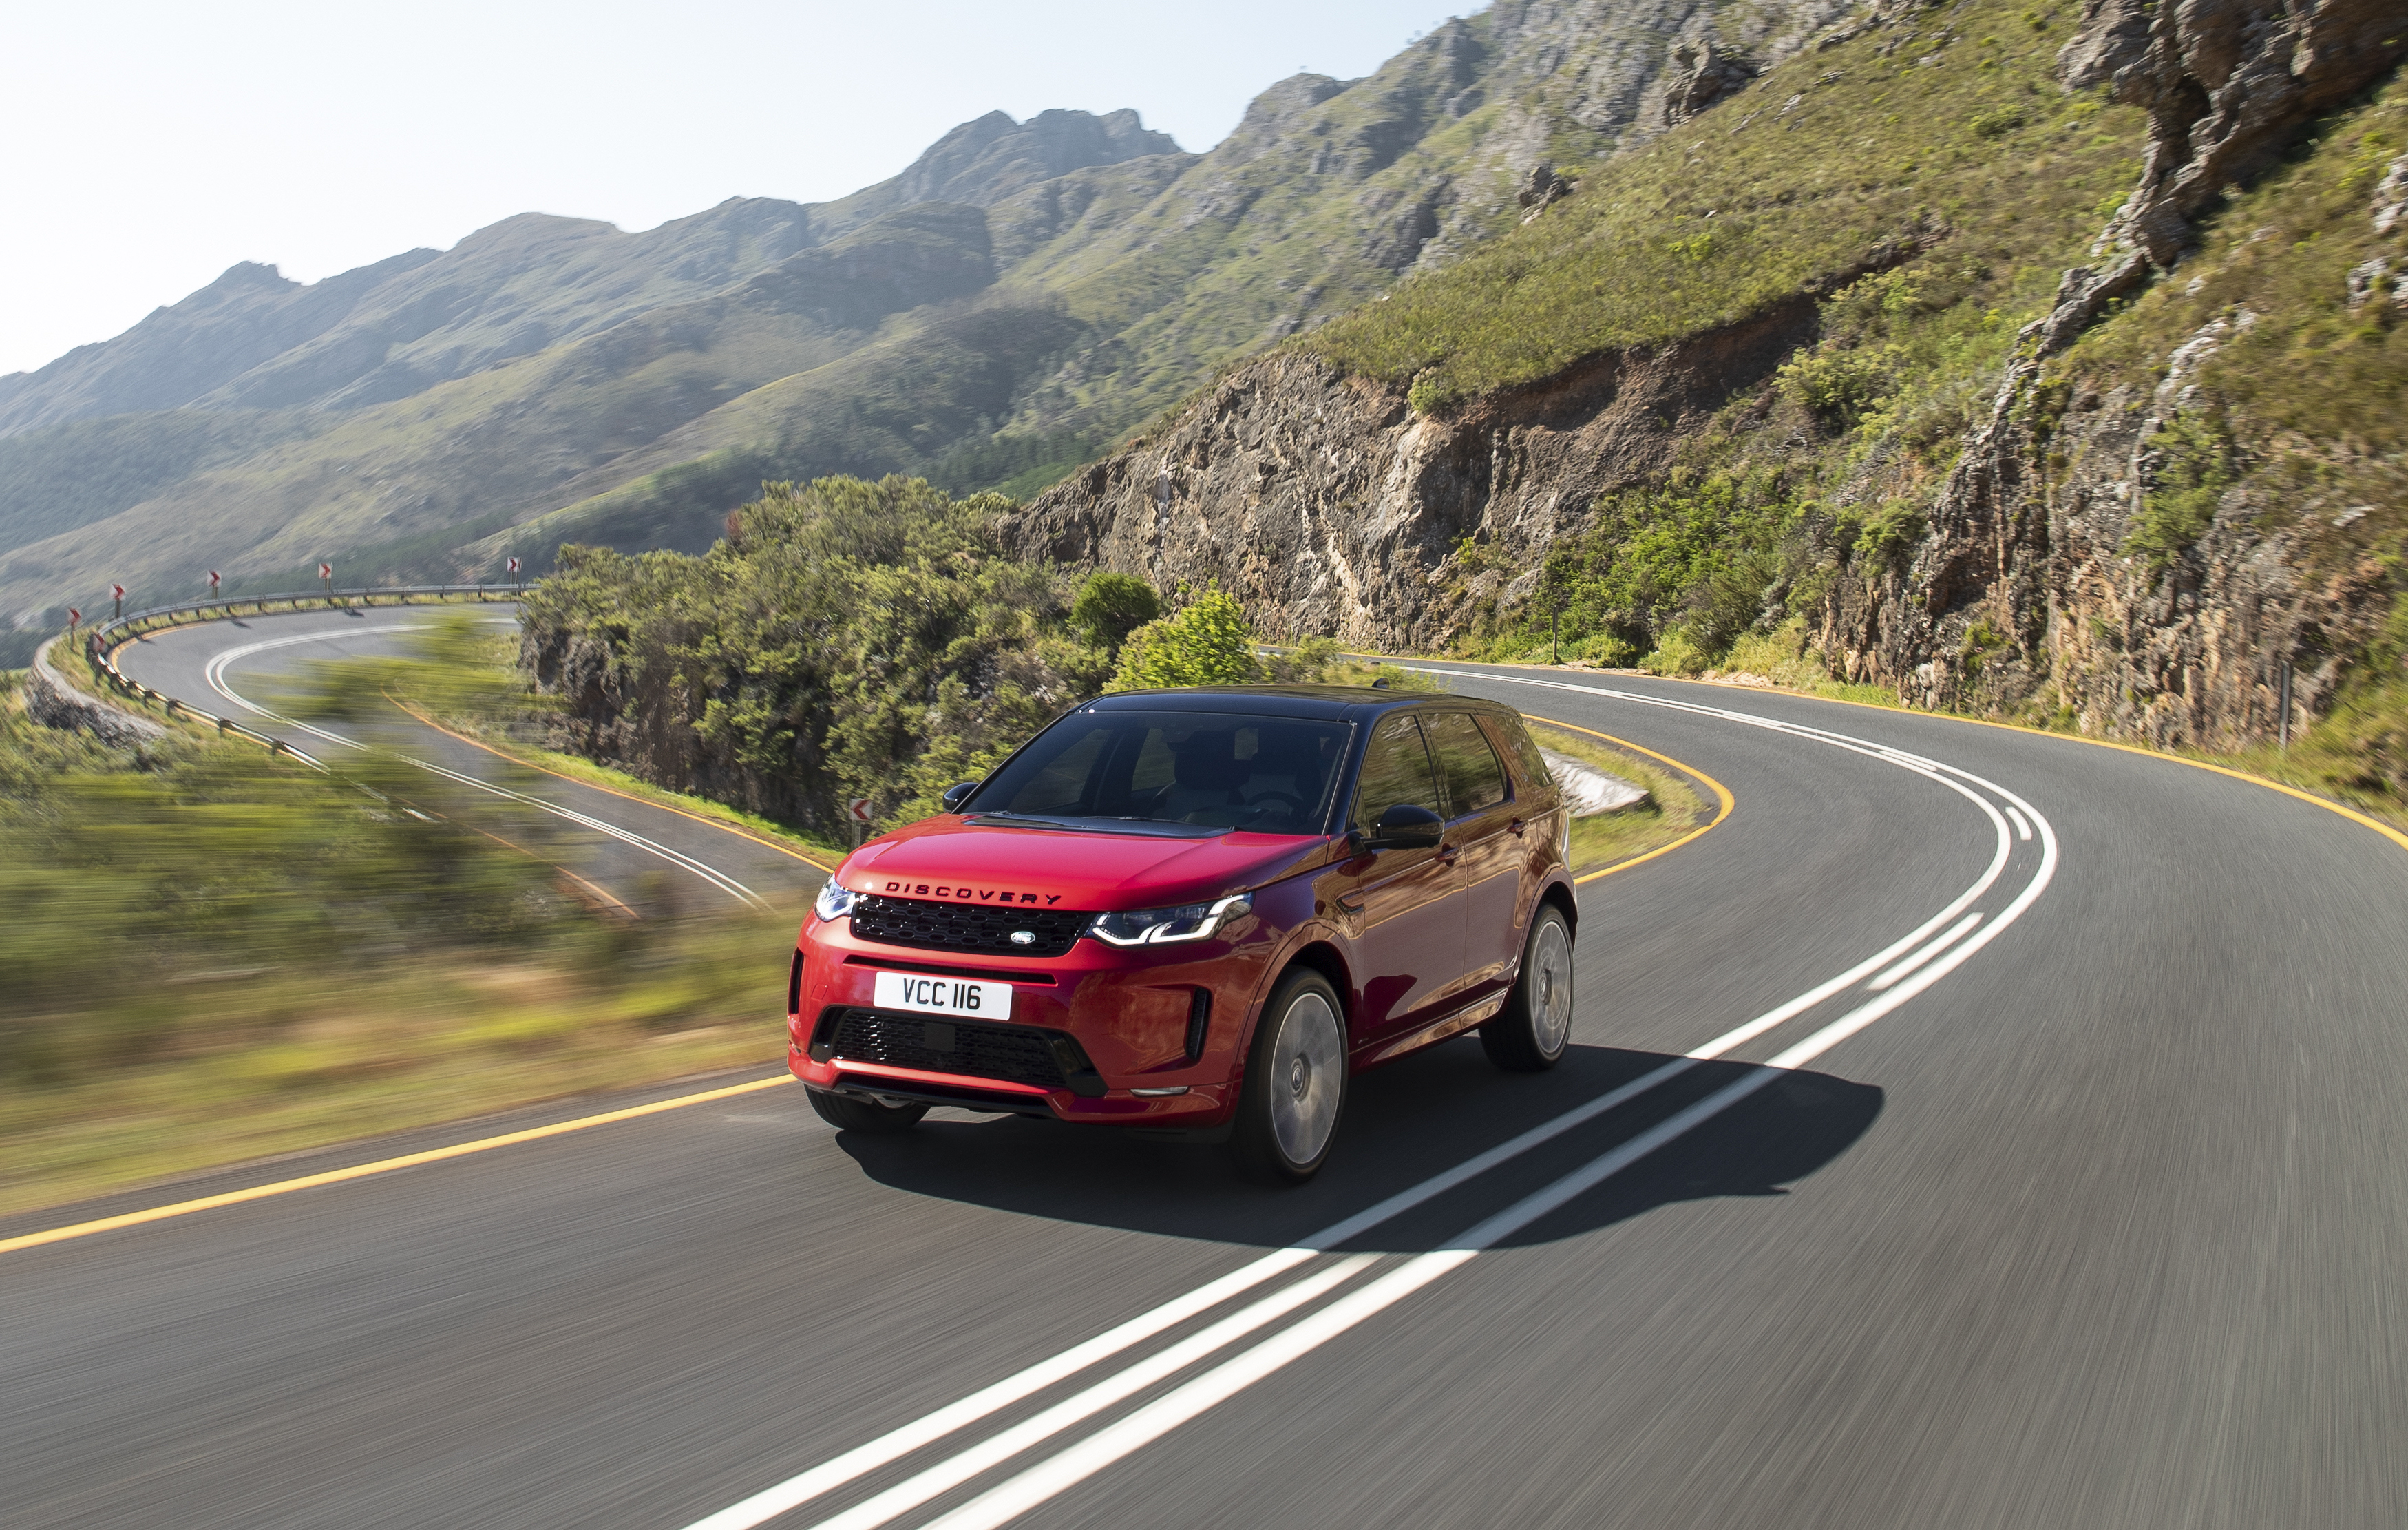 Land Rover Discovery on a mountain road